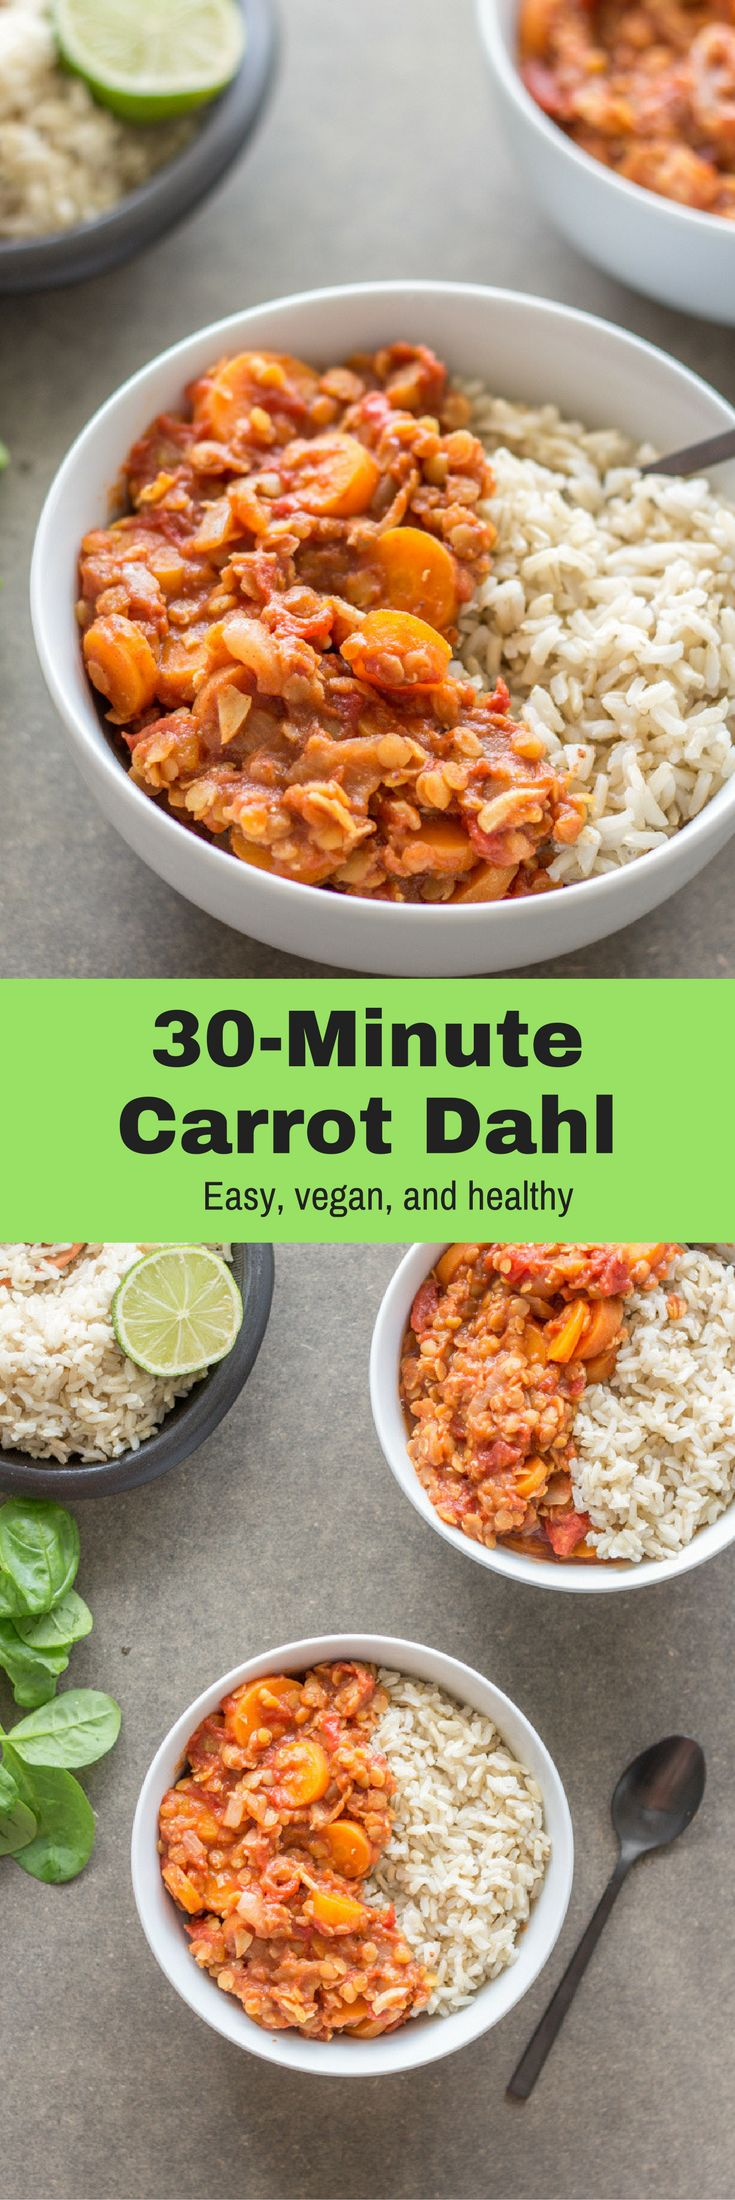 A 30-Minute Carrot Dahl with brown rice and spinach. Cheap, filling, healthy, sodelicious, and perfect for meal prepping! Healthy vegan recipes|healthy| vegan| dinner| lunch| vegan dinner recipes| recipes| vegetarian| The Mostly Healthy |